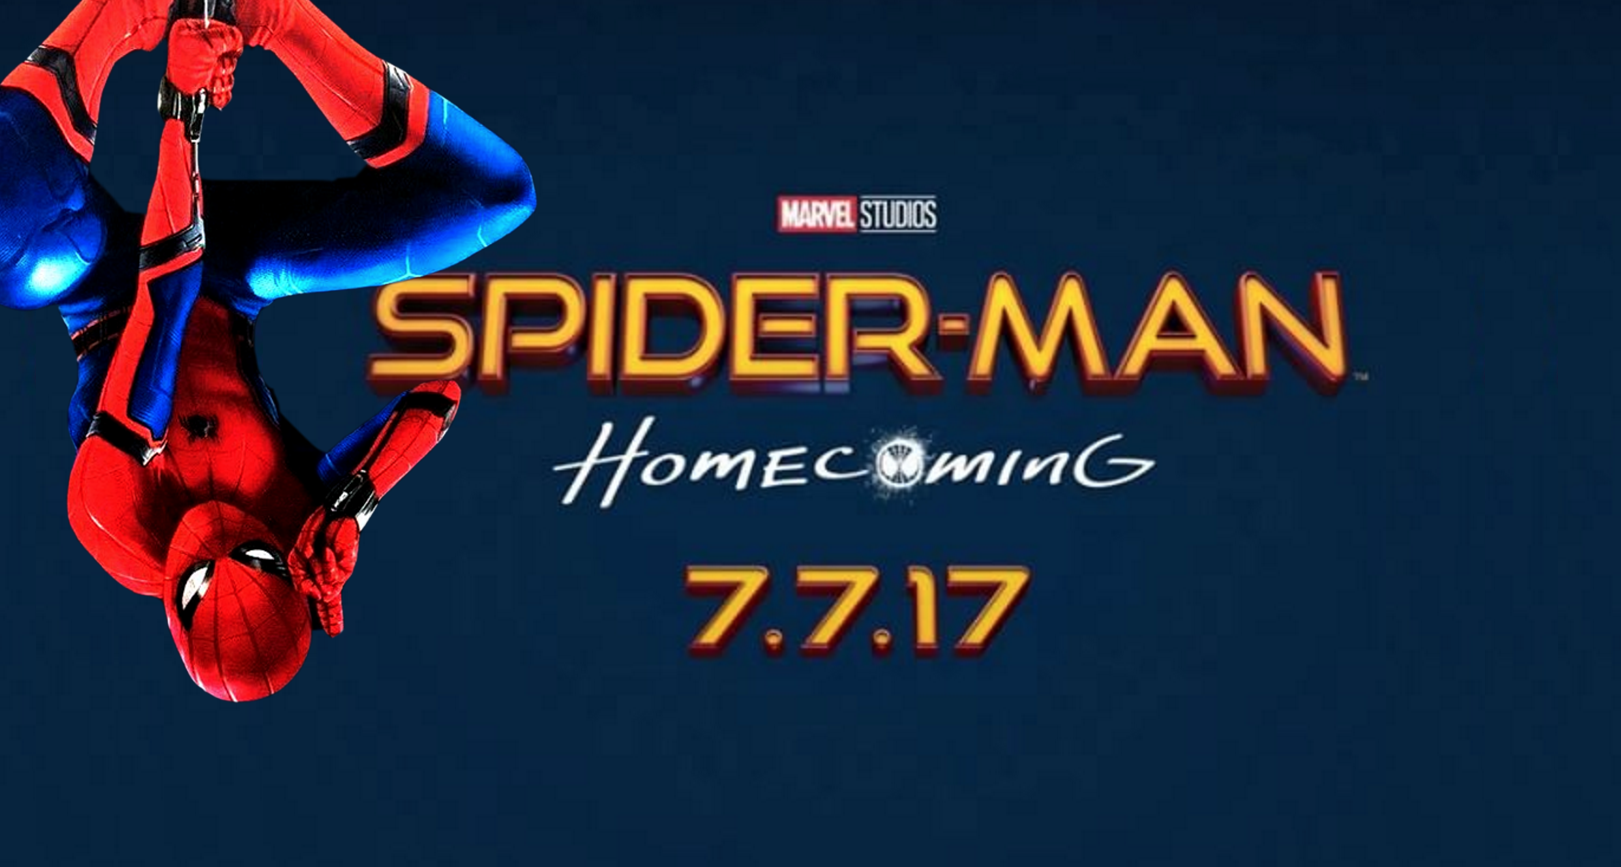 'Spider-Man: Homecoming' Trailer Confirmed to Swing by Tomorrow